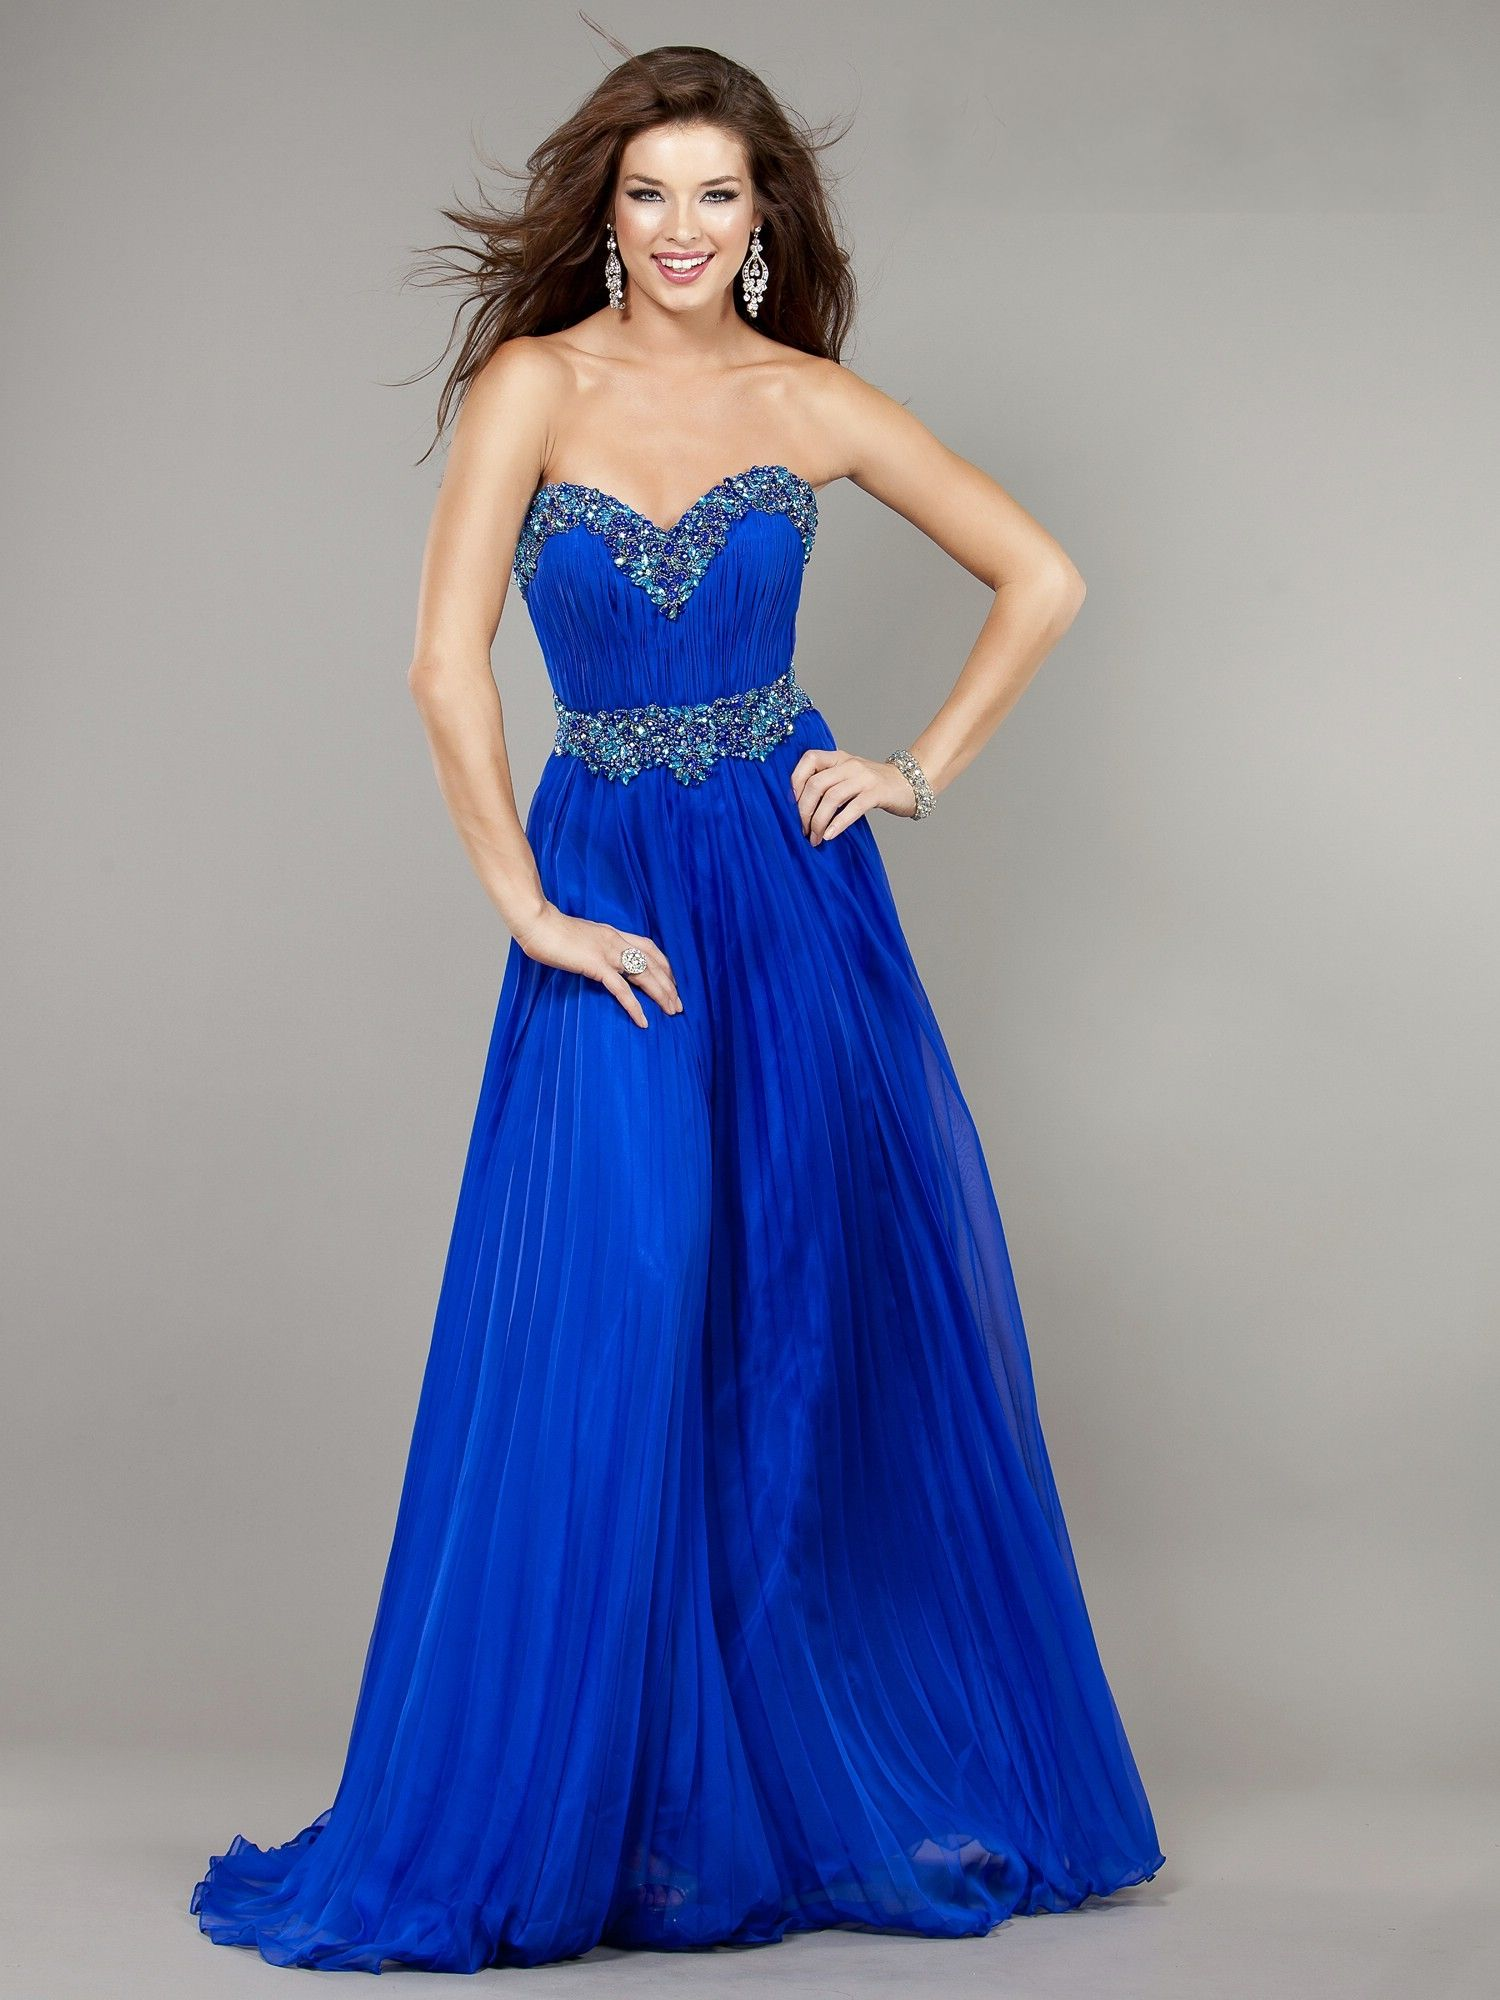 10 Best images about Blue Prom Dress on Pinterest  Prom dresses ...